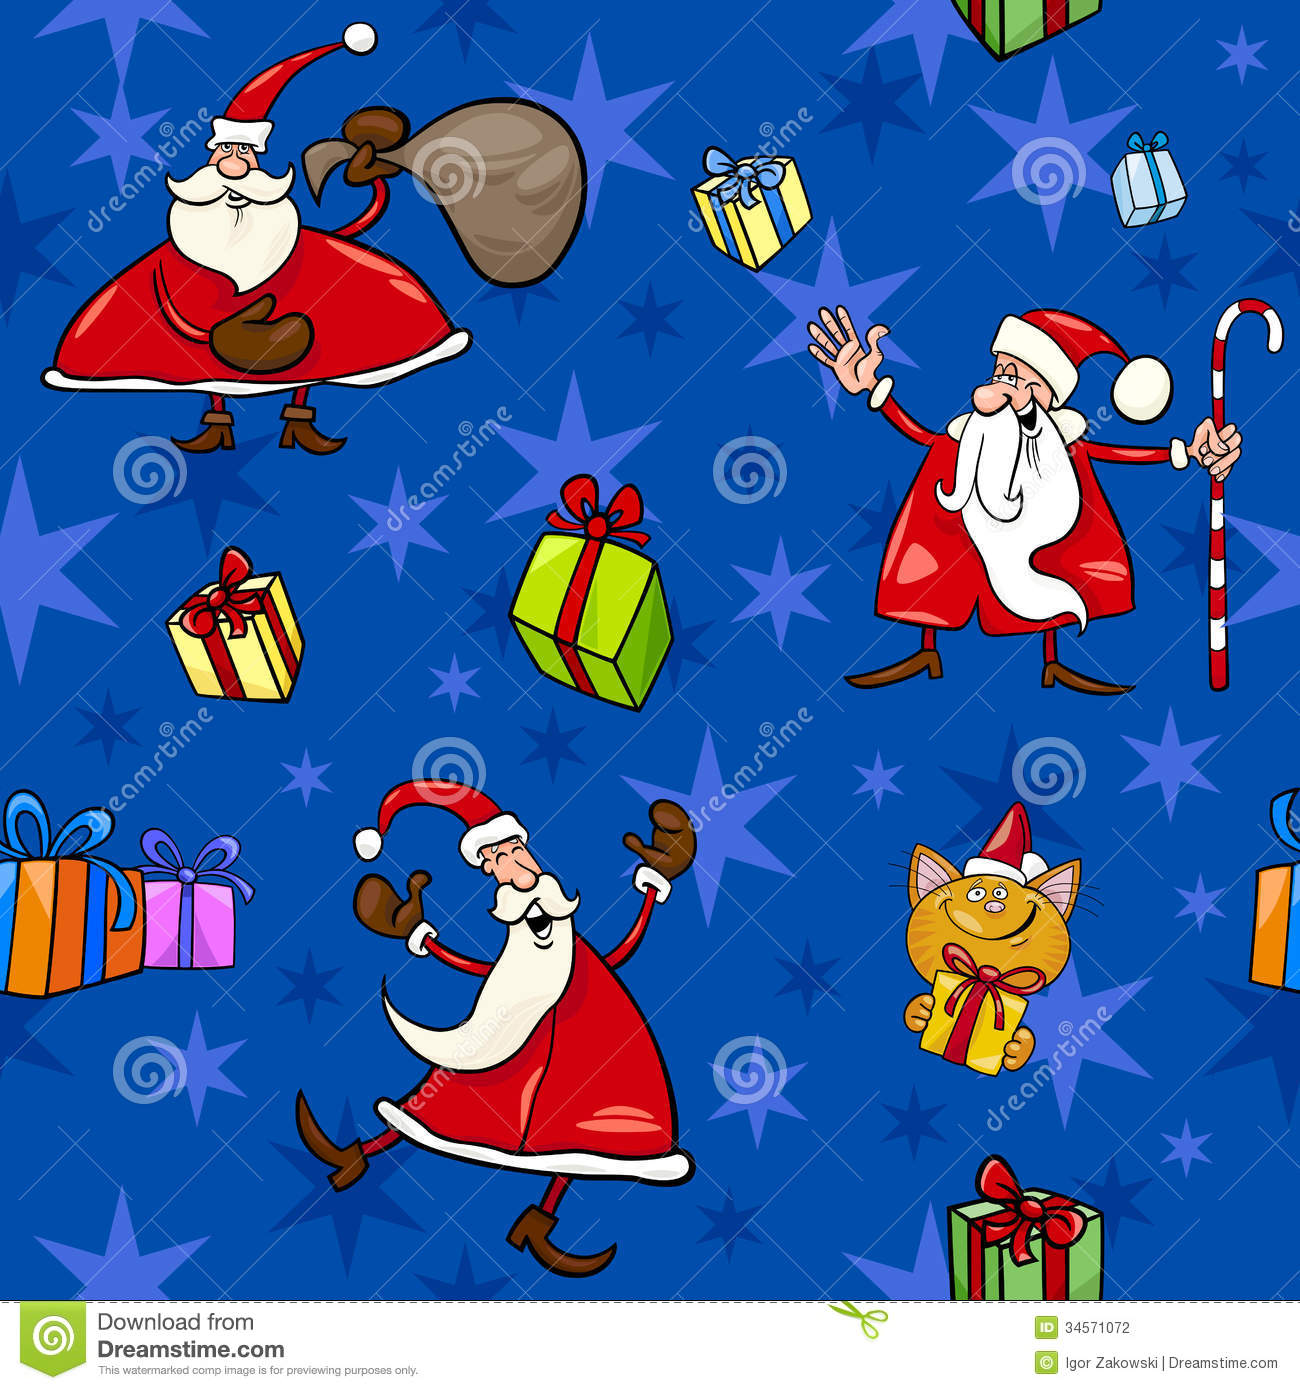 Cute Mittens Wallpaper Christmas Cartoon Seamless Pattern Decor Stock Photography